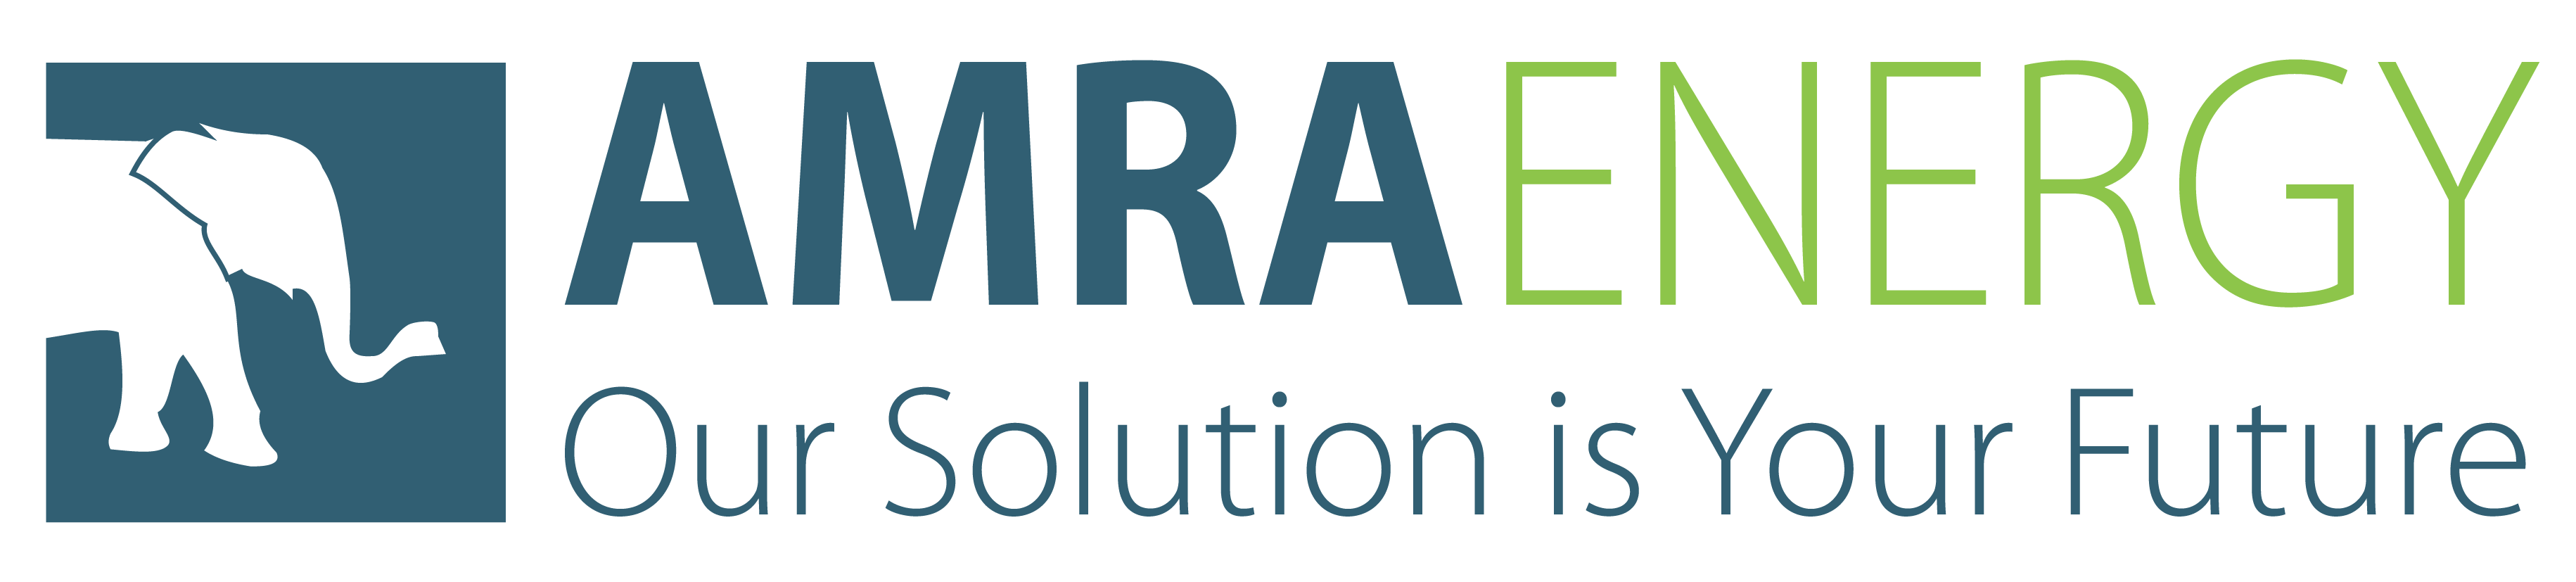 AMRA ENERGY LOGO _MAIN copy